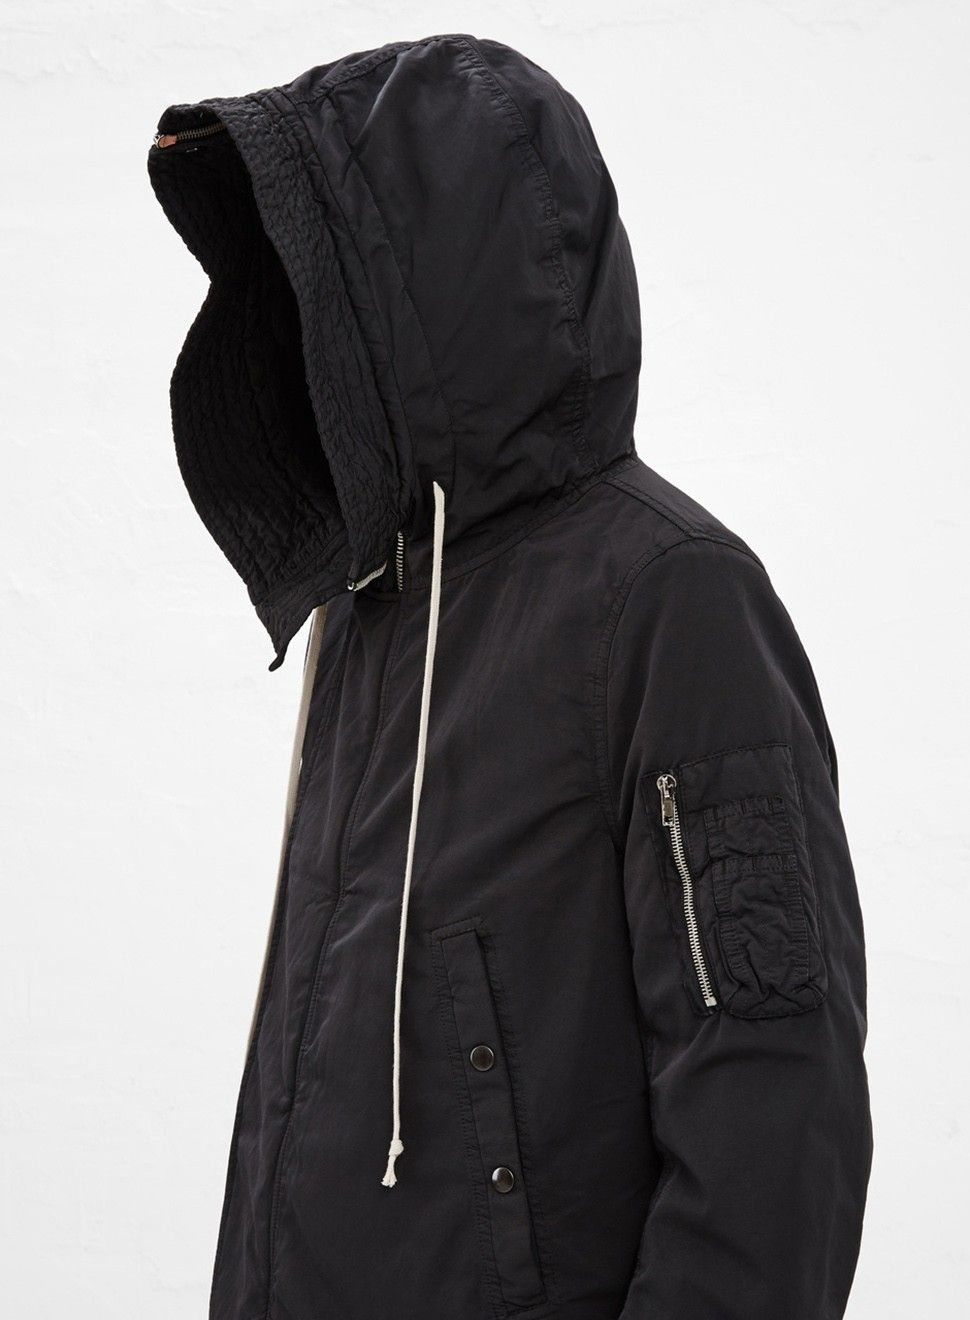 Mens Vandals RO N2B Hooded Bomber Jacket at Fabrixquare | Herre ...